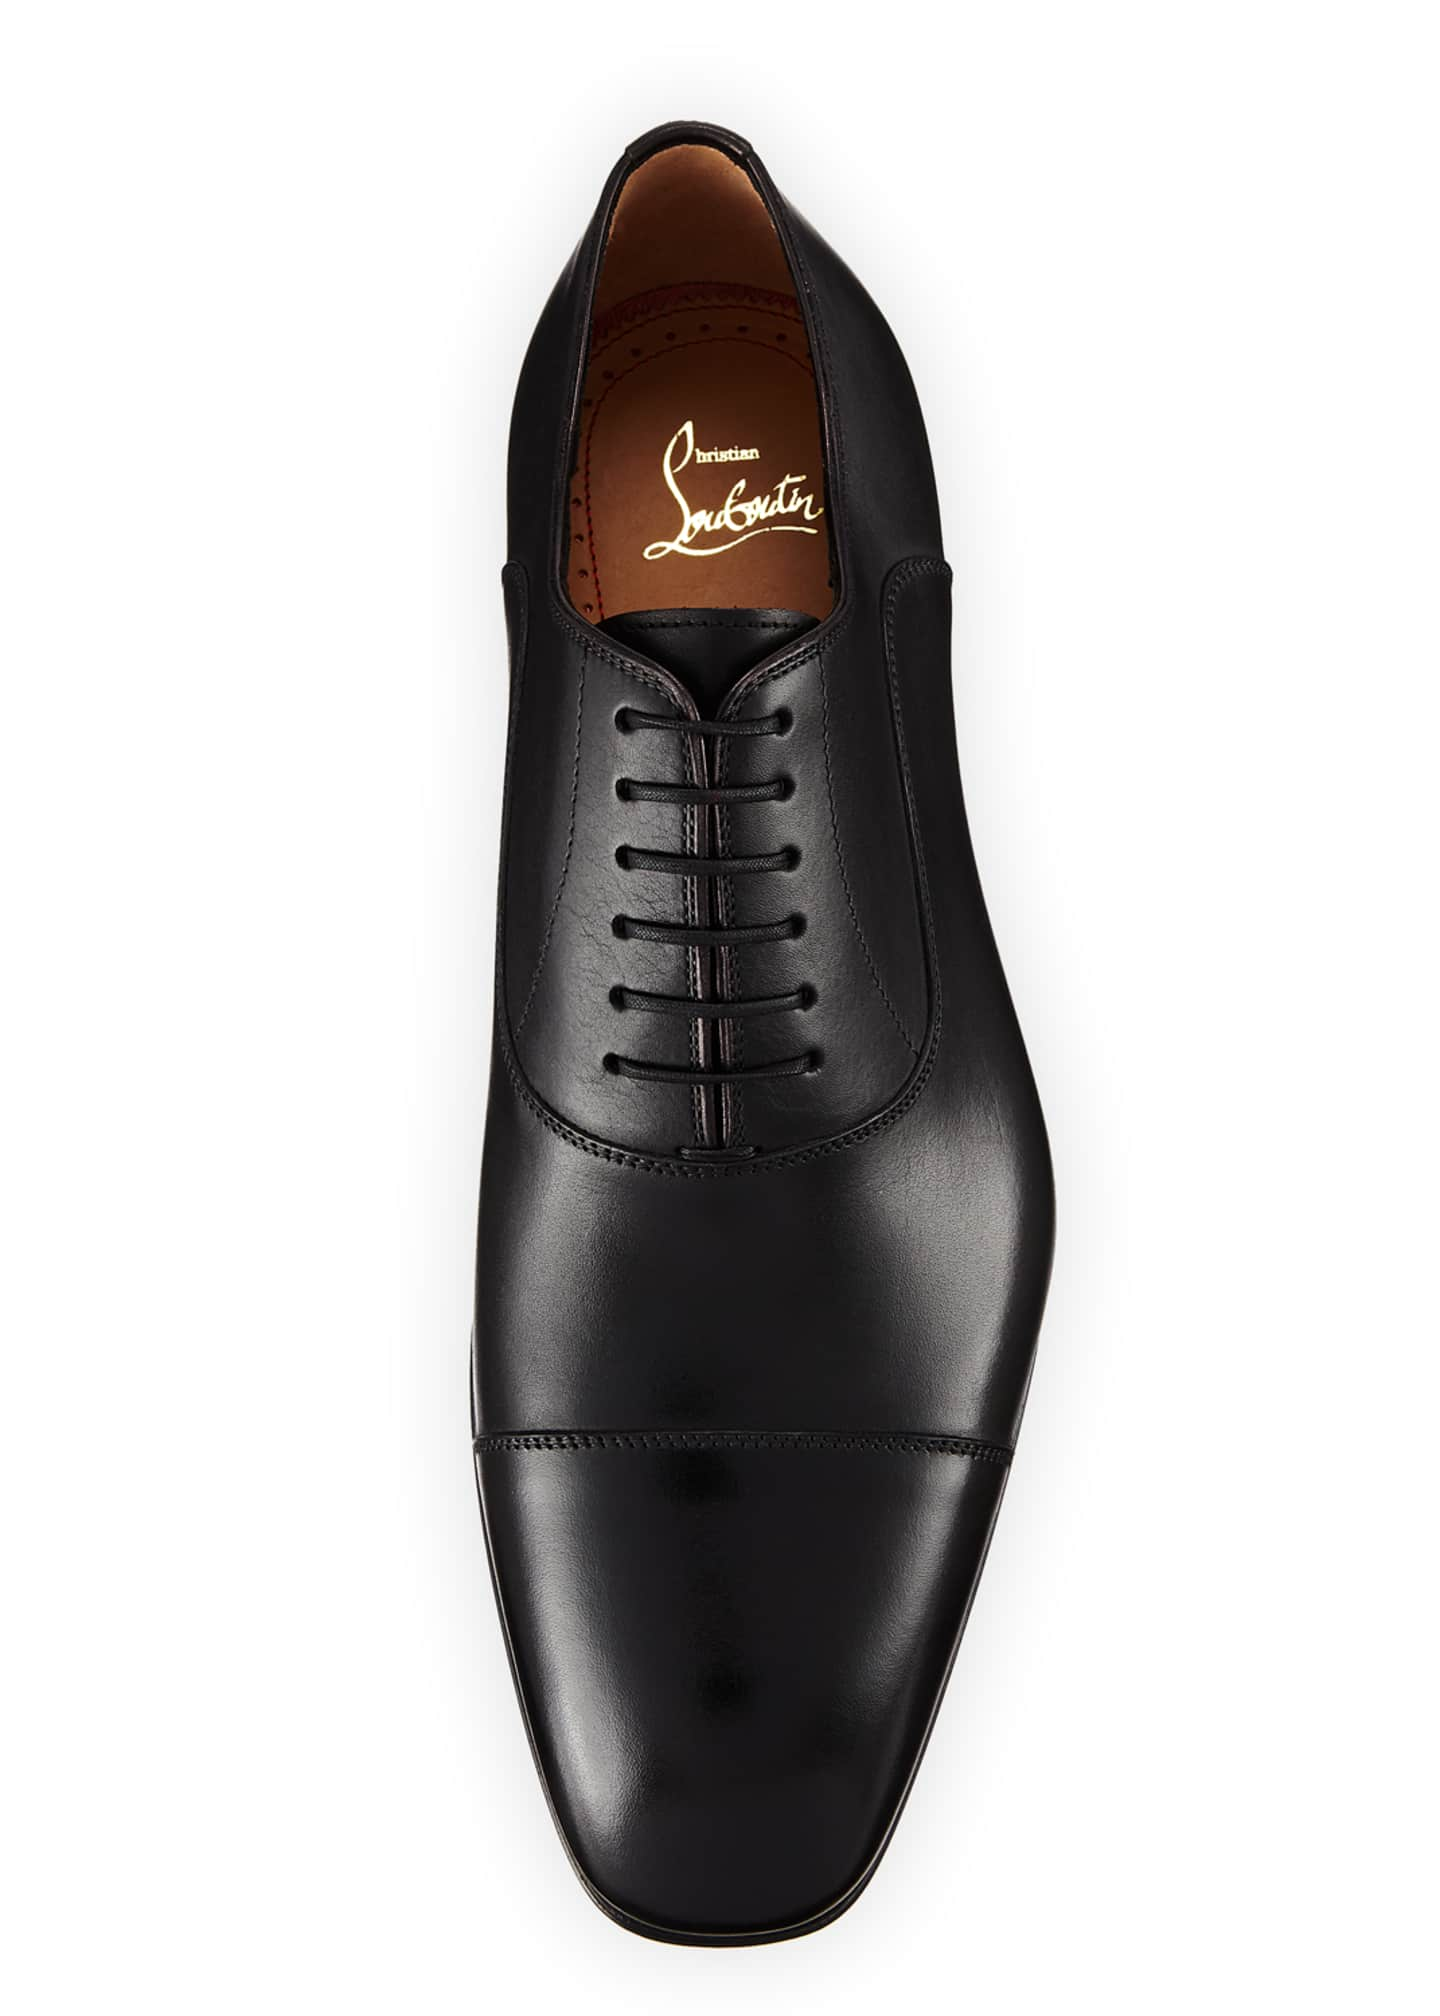 Image 2 of 3: Greggo Men's Lace-Up Leather Dress Shoes